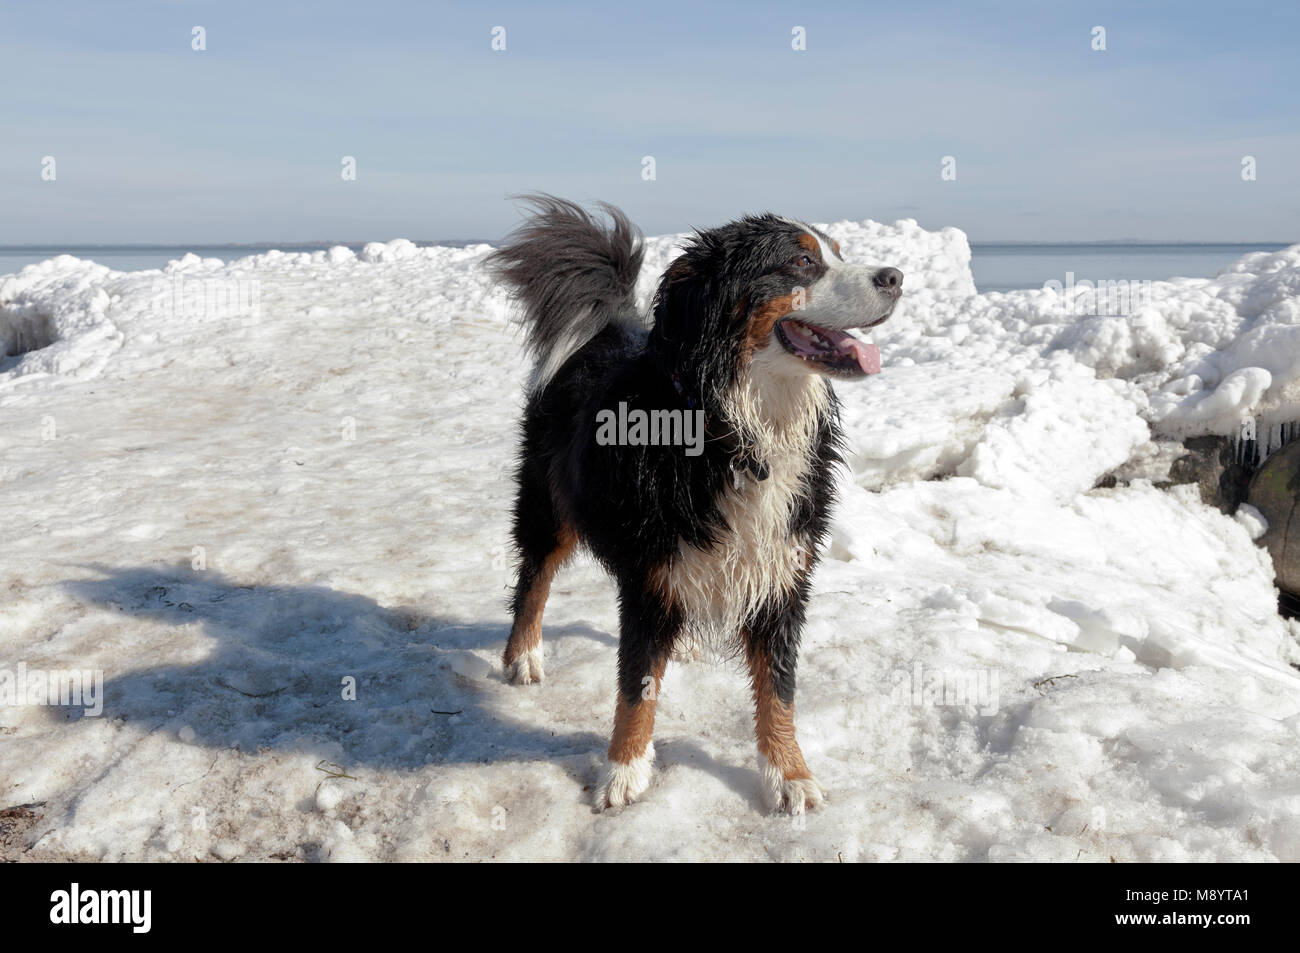 A Bernese Mountain Dog enjoys a sunny spring day with melting ice after an extremely cold spell at Oresund, the - Stock Image